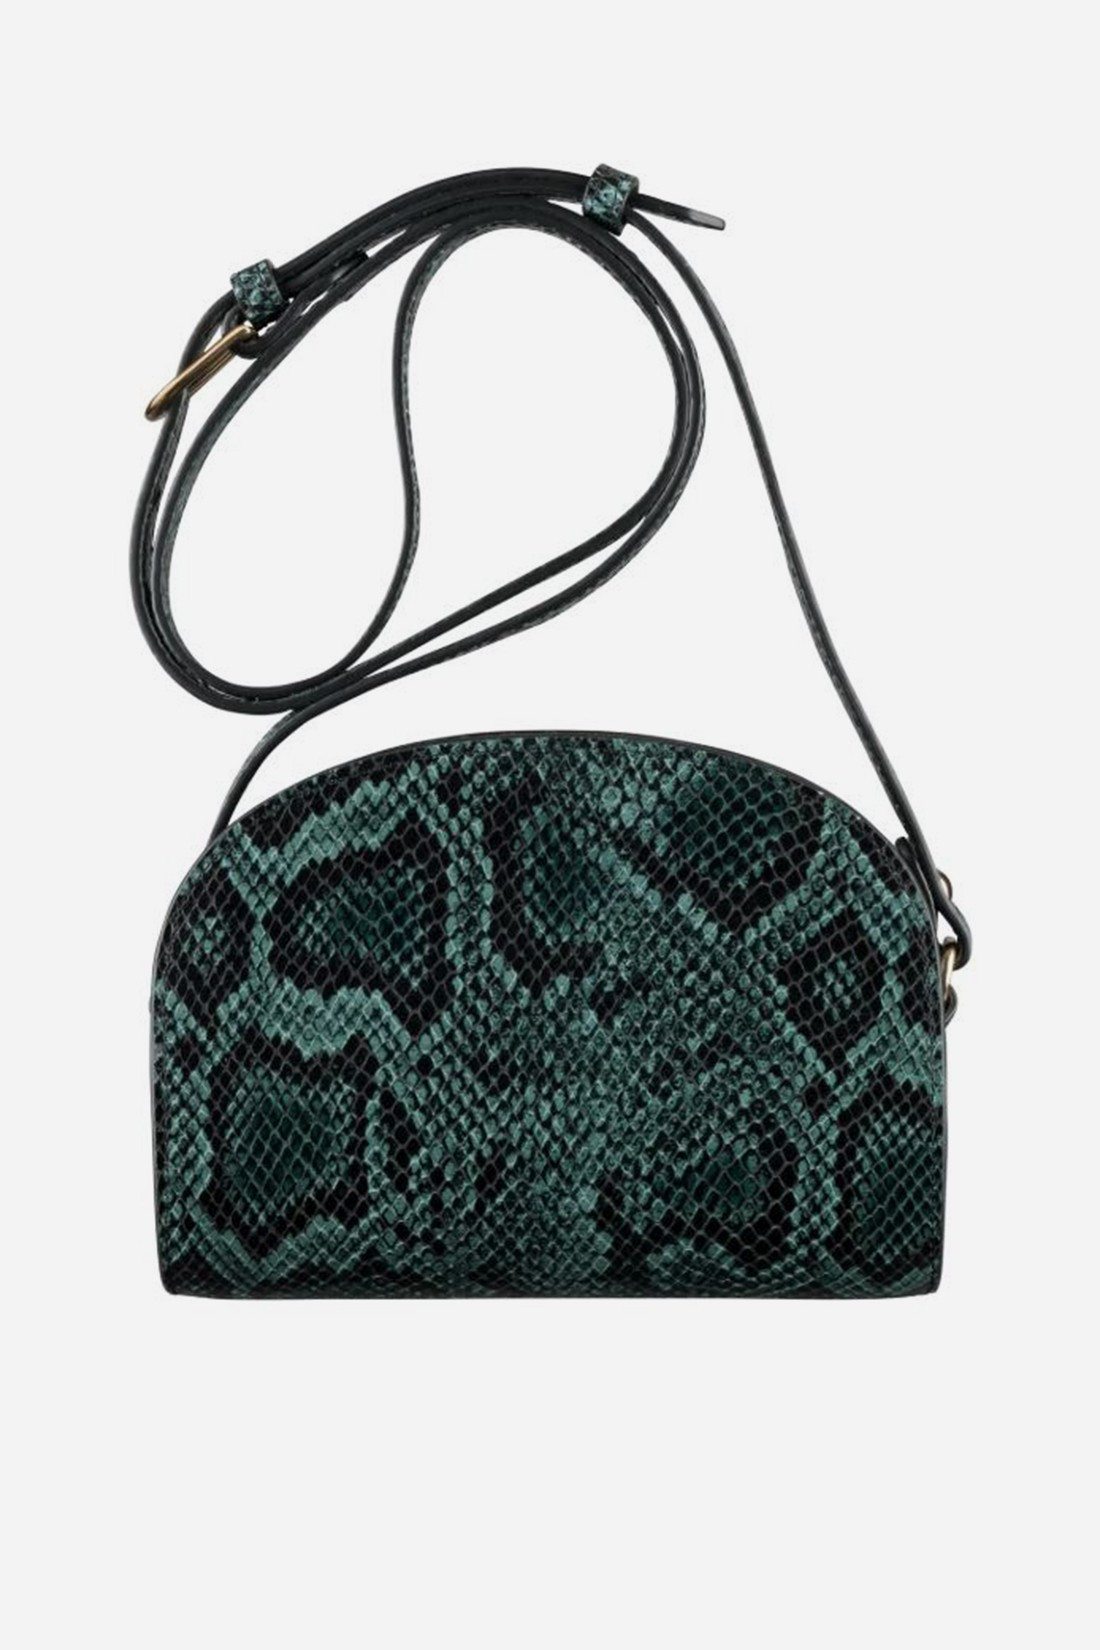 A.P.C. FOR WOMAN / Sac demi-lune Vert fonce